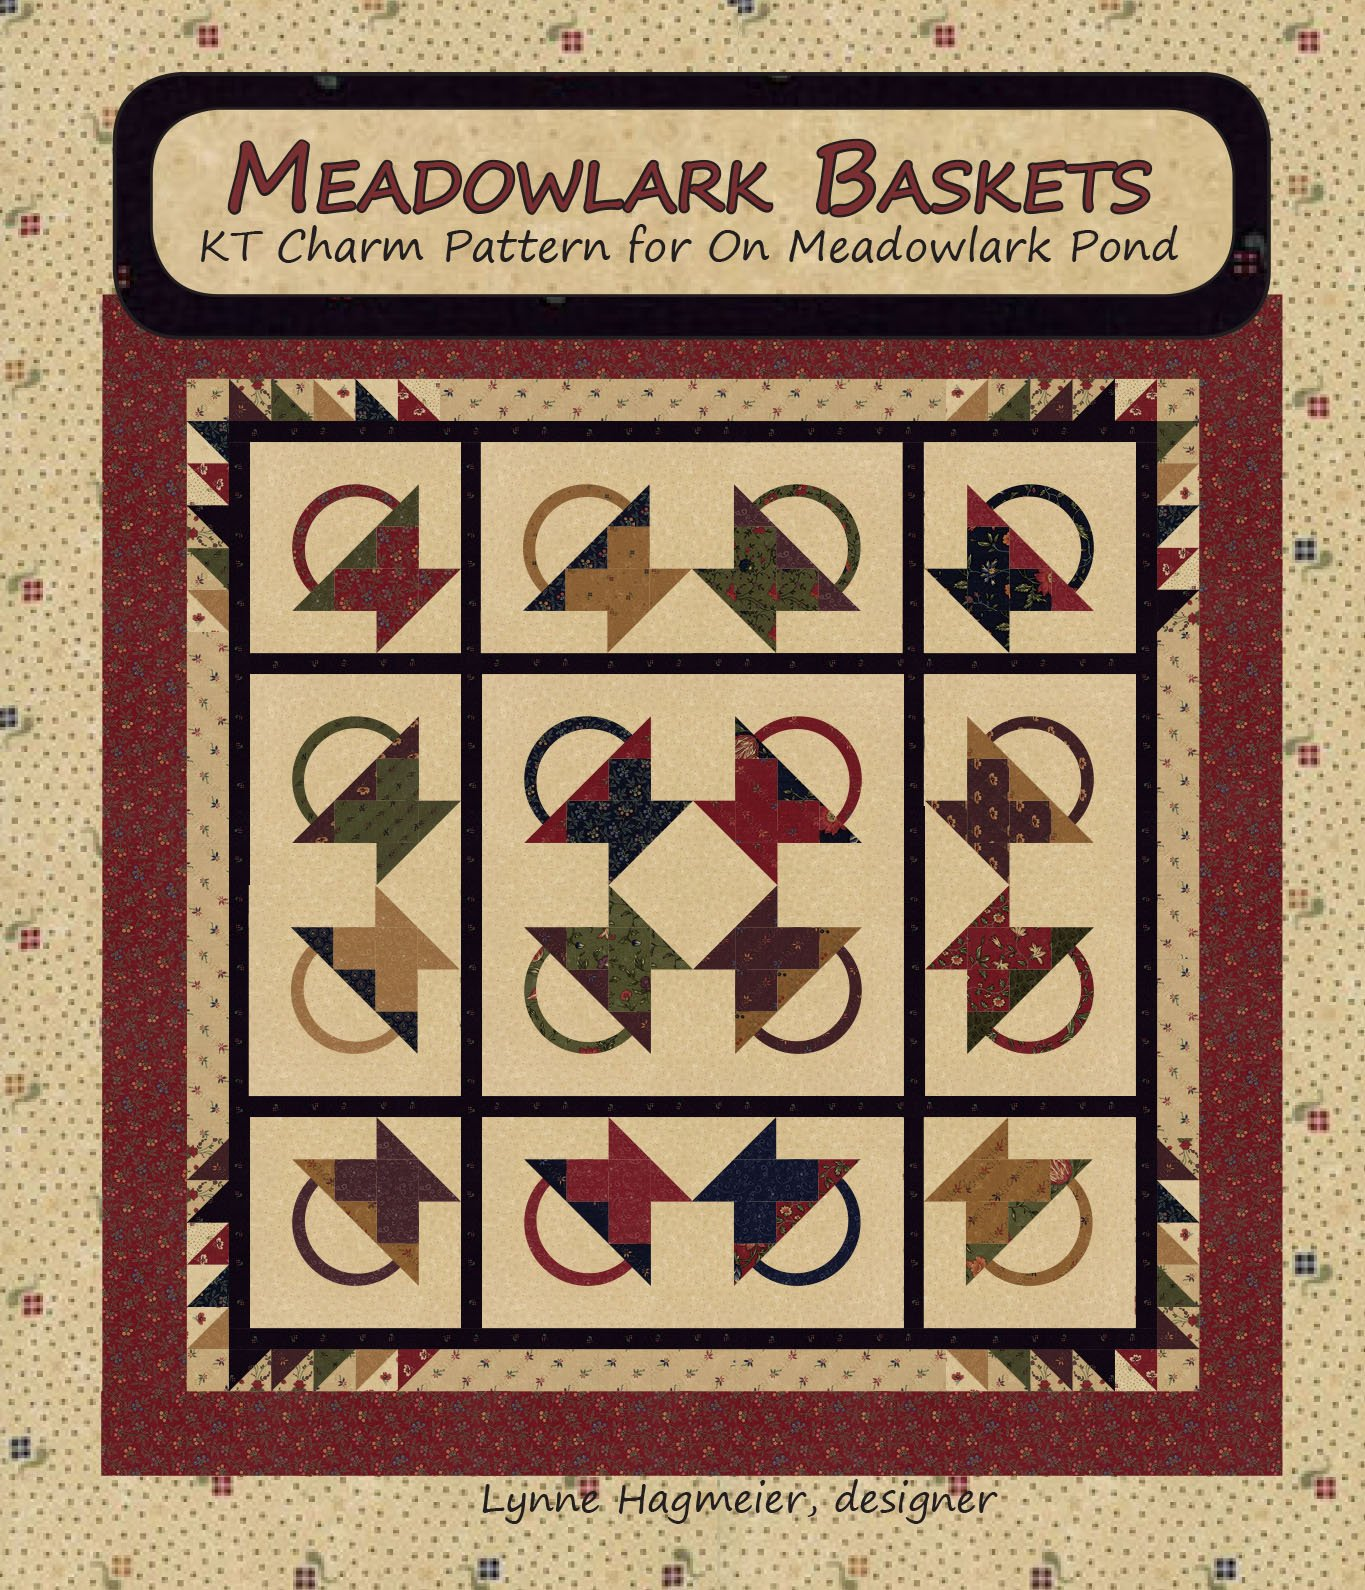 Meadowlark Baskets